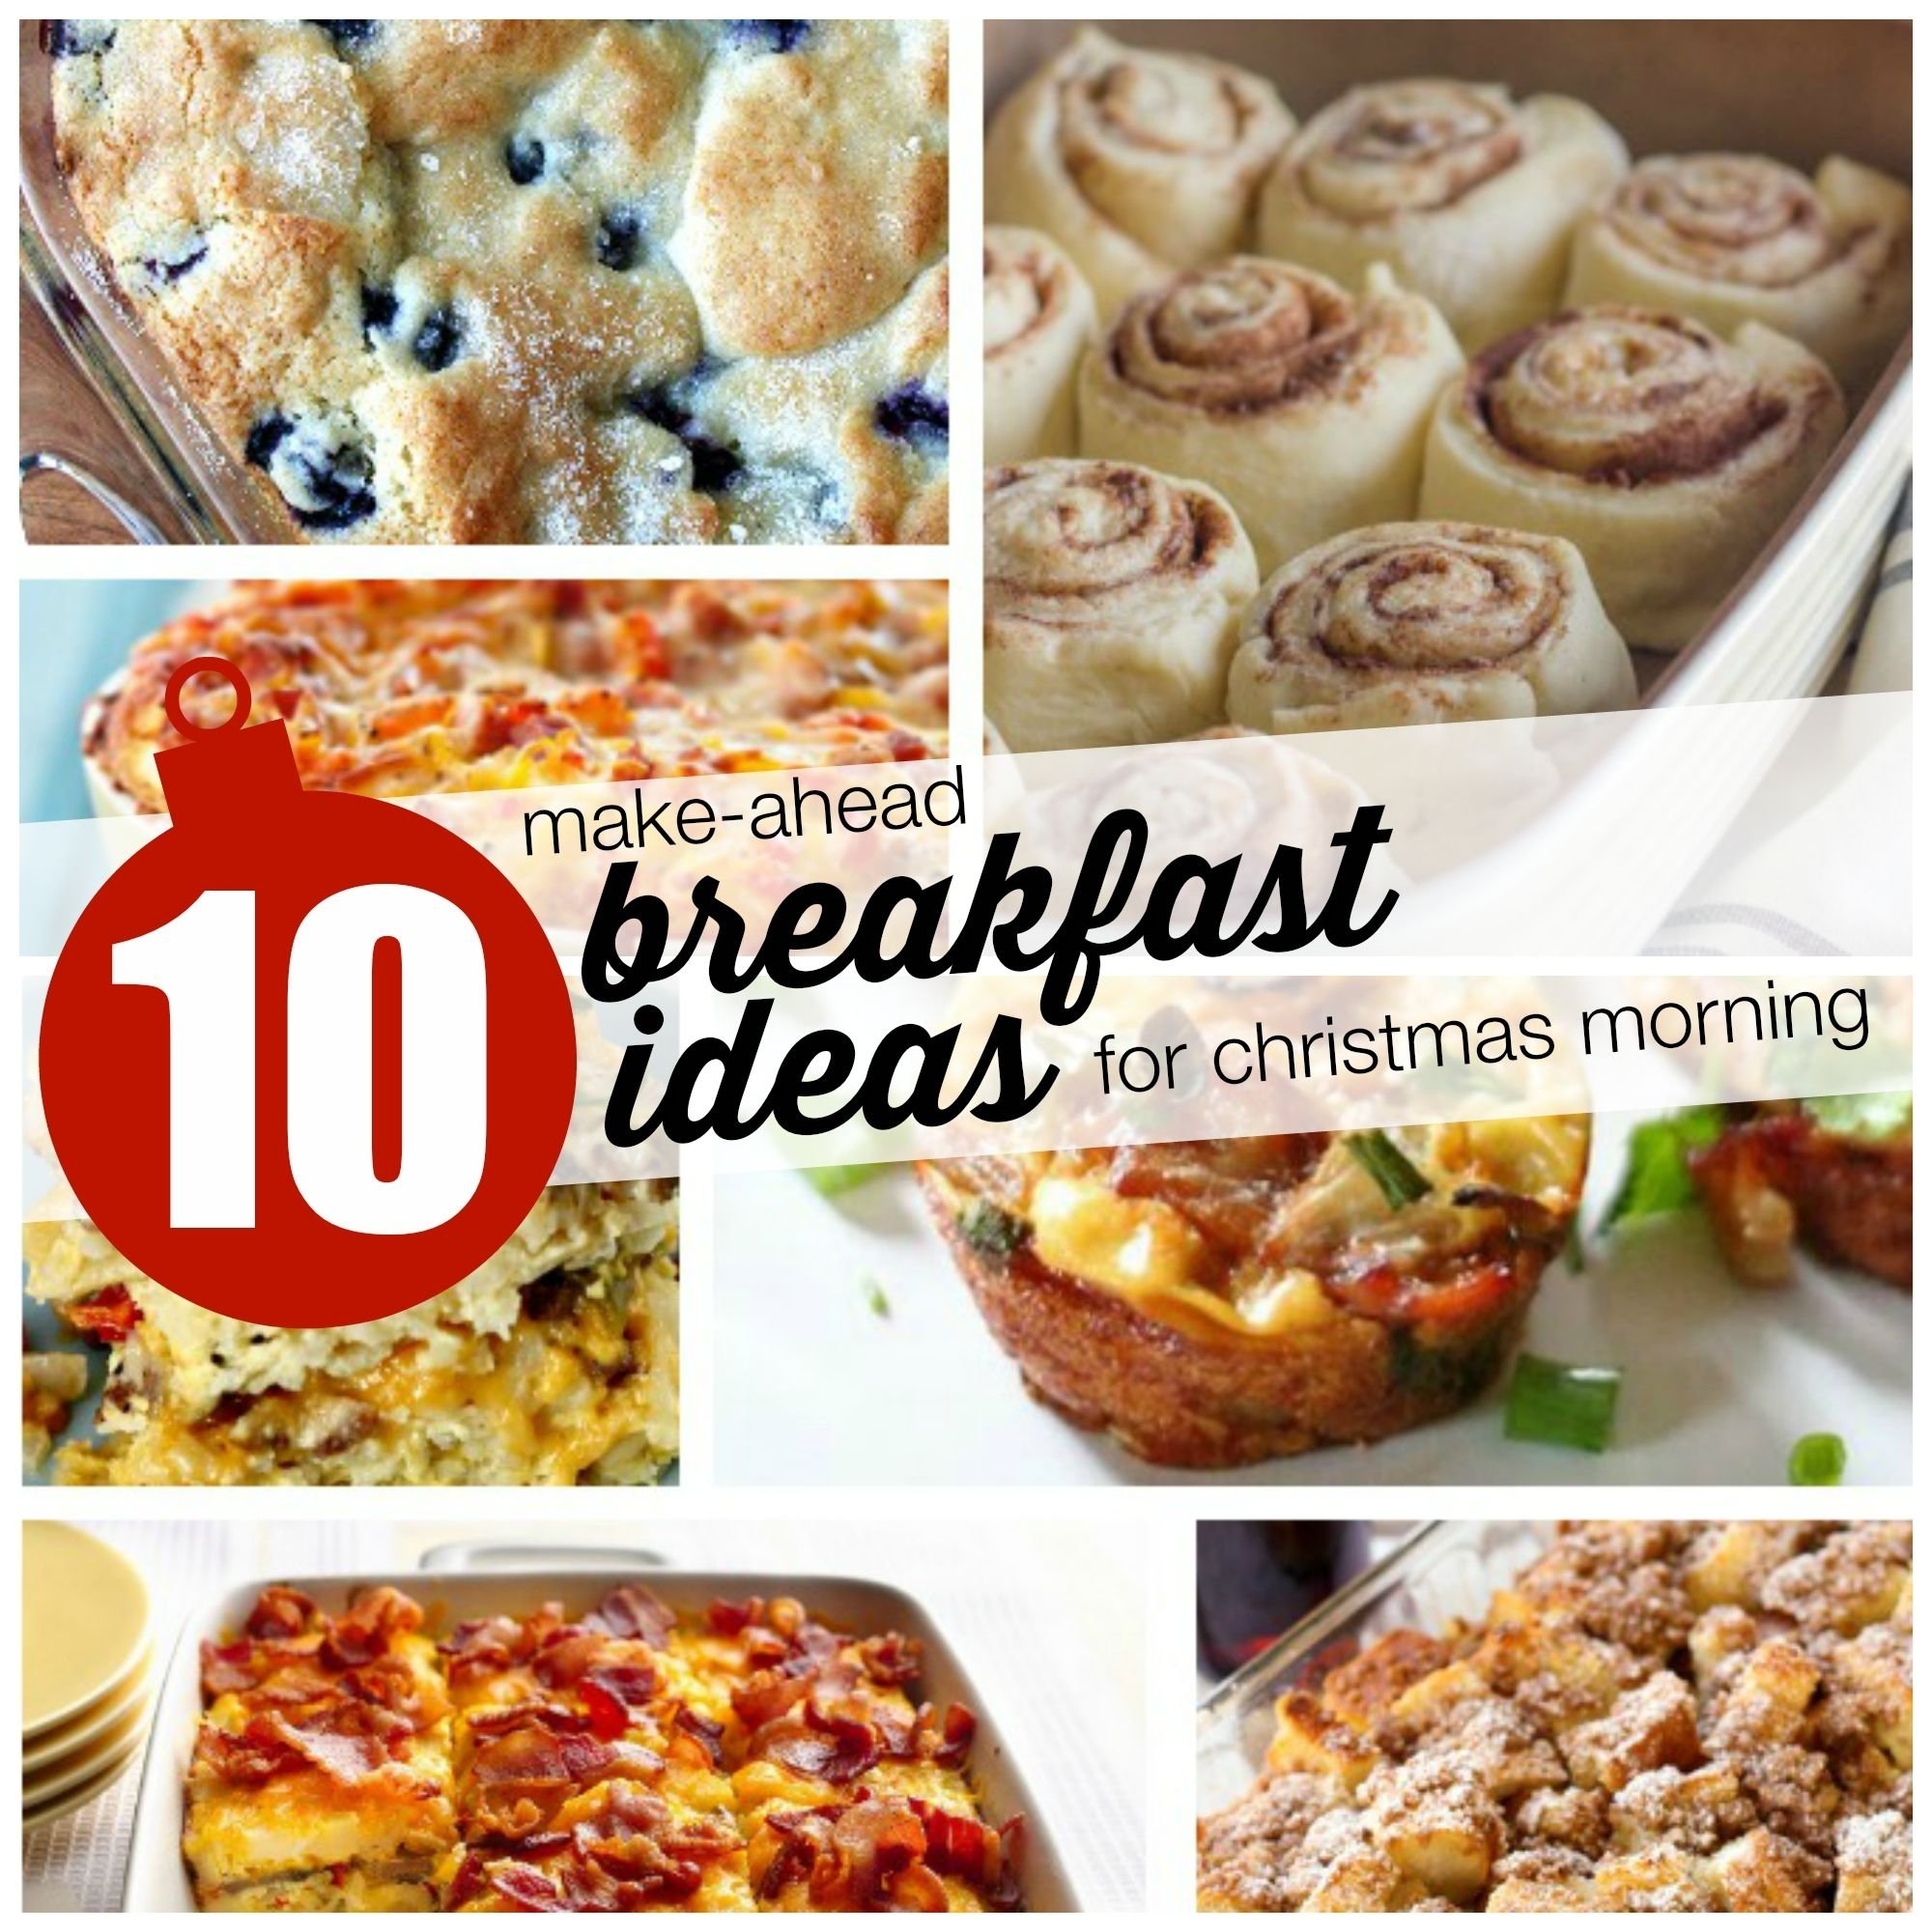 10 Perfect Breakfast Ideas For Christmas Morning 10 make ahead breakfast ideas for christmas morning 2021